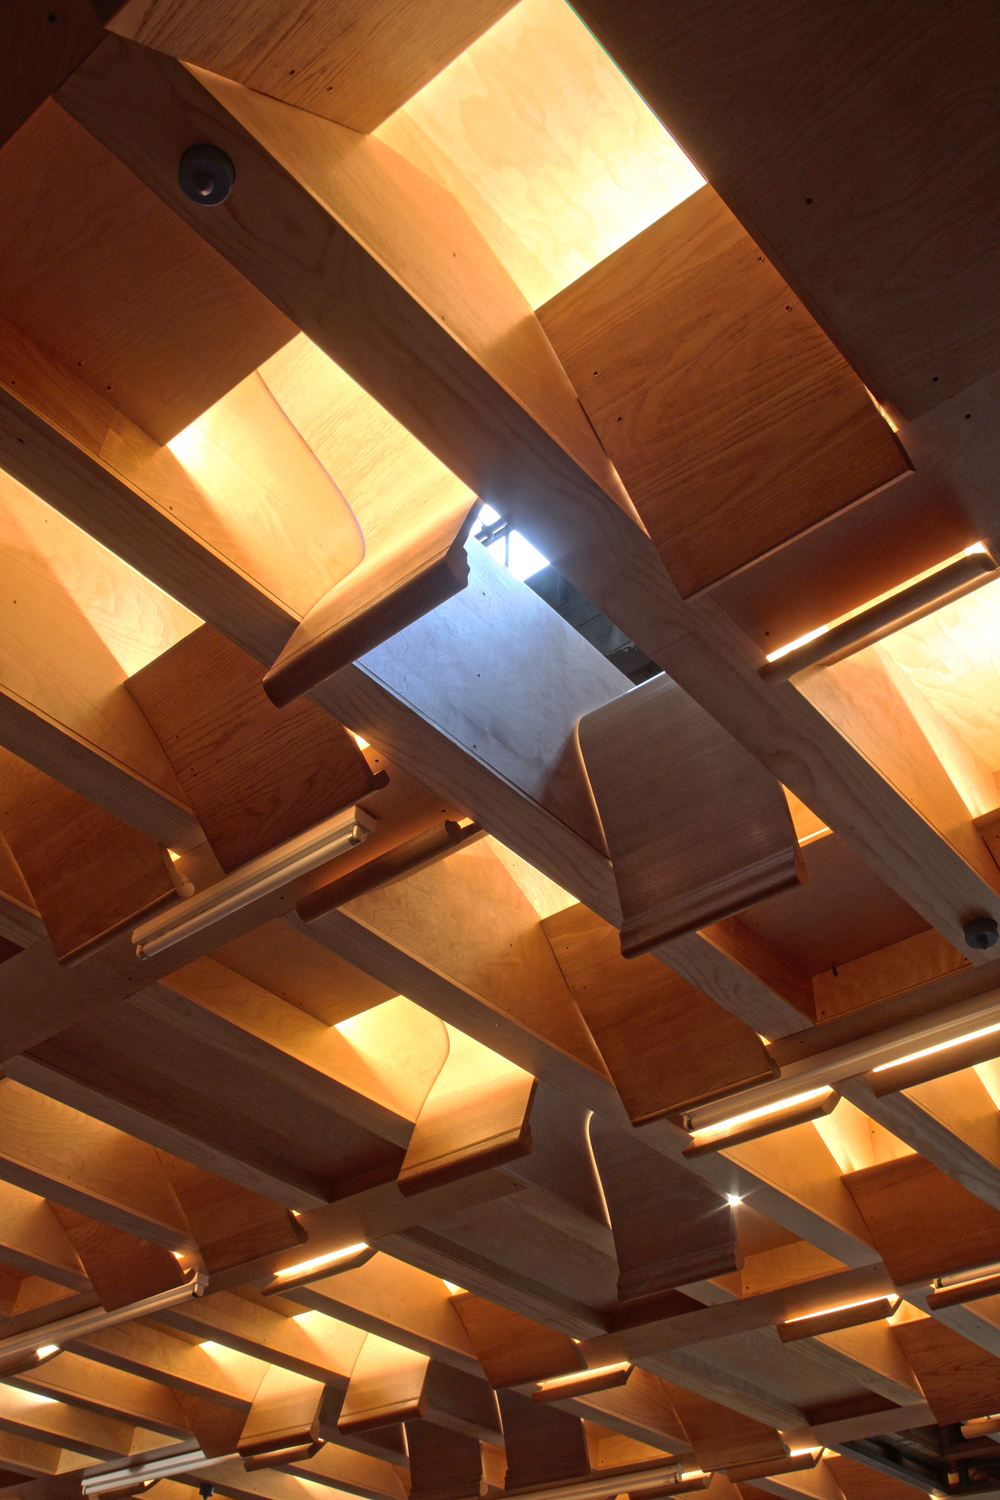 Community room ceiling features light diffusers made out of reused church pews